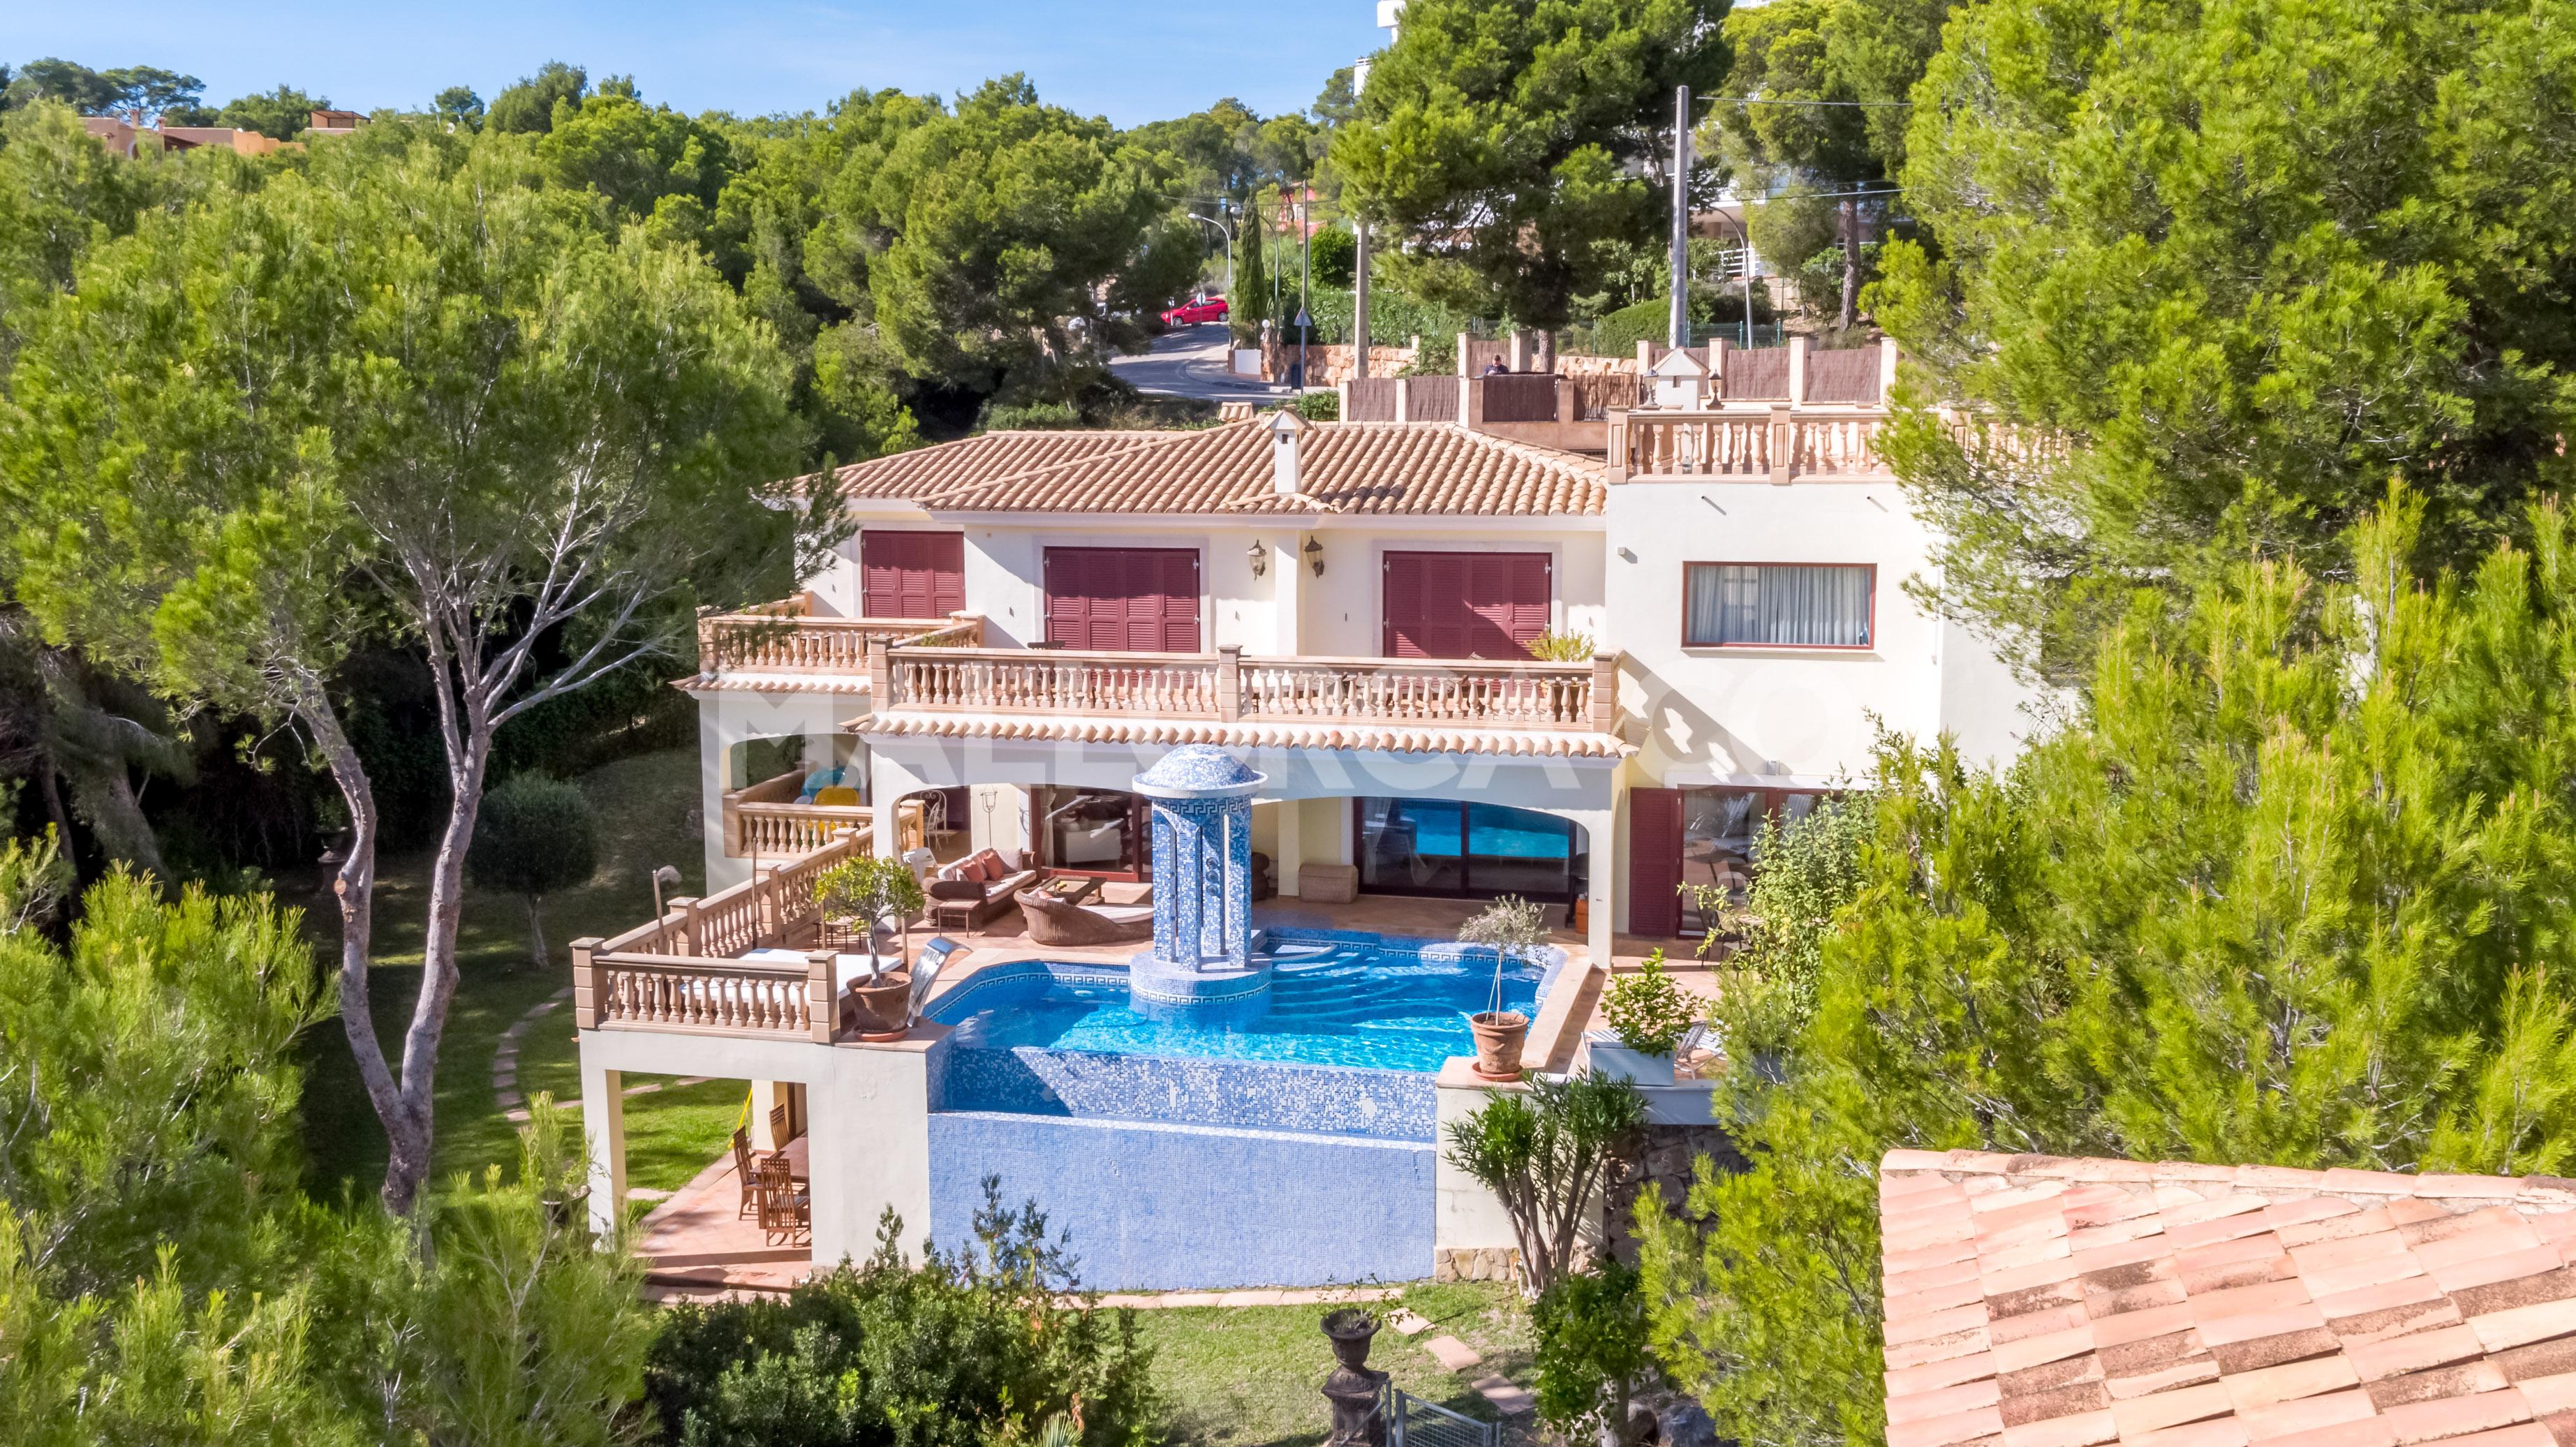 Stunning villa with private access to the beach in Cala Vinyes @ Mallorca